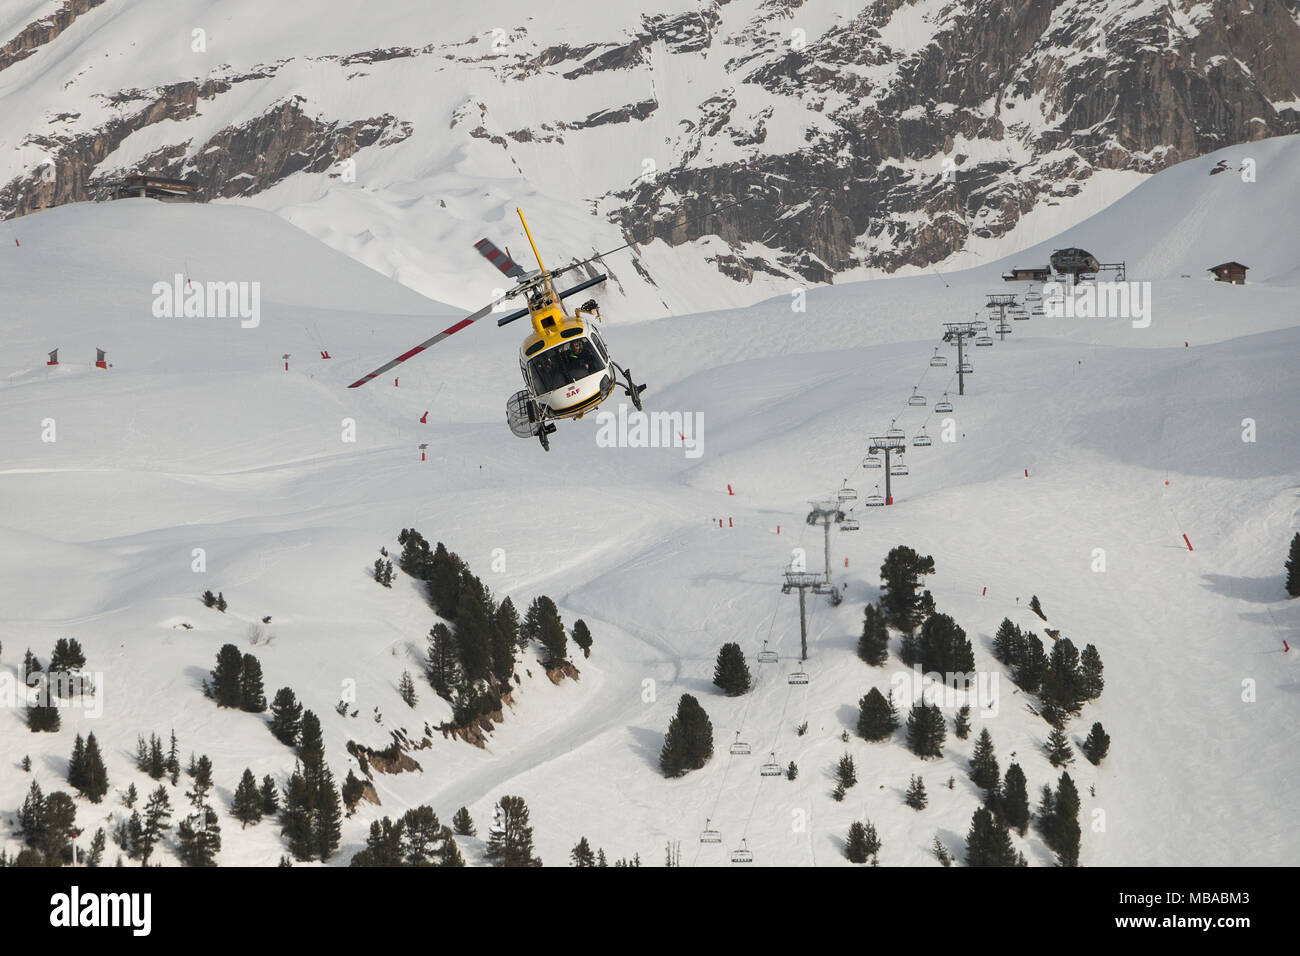 Helicopter Flying Over A Ski Resort Courchevel 3 Valleys Savoie Rhone Alpes France Europe - Stock Image